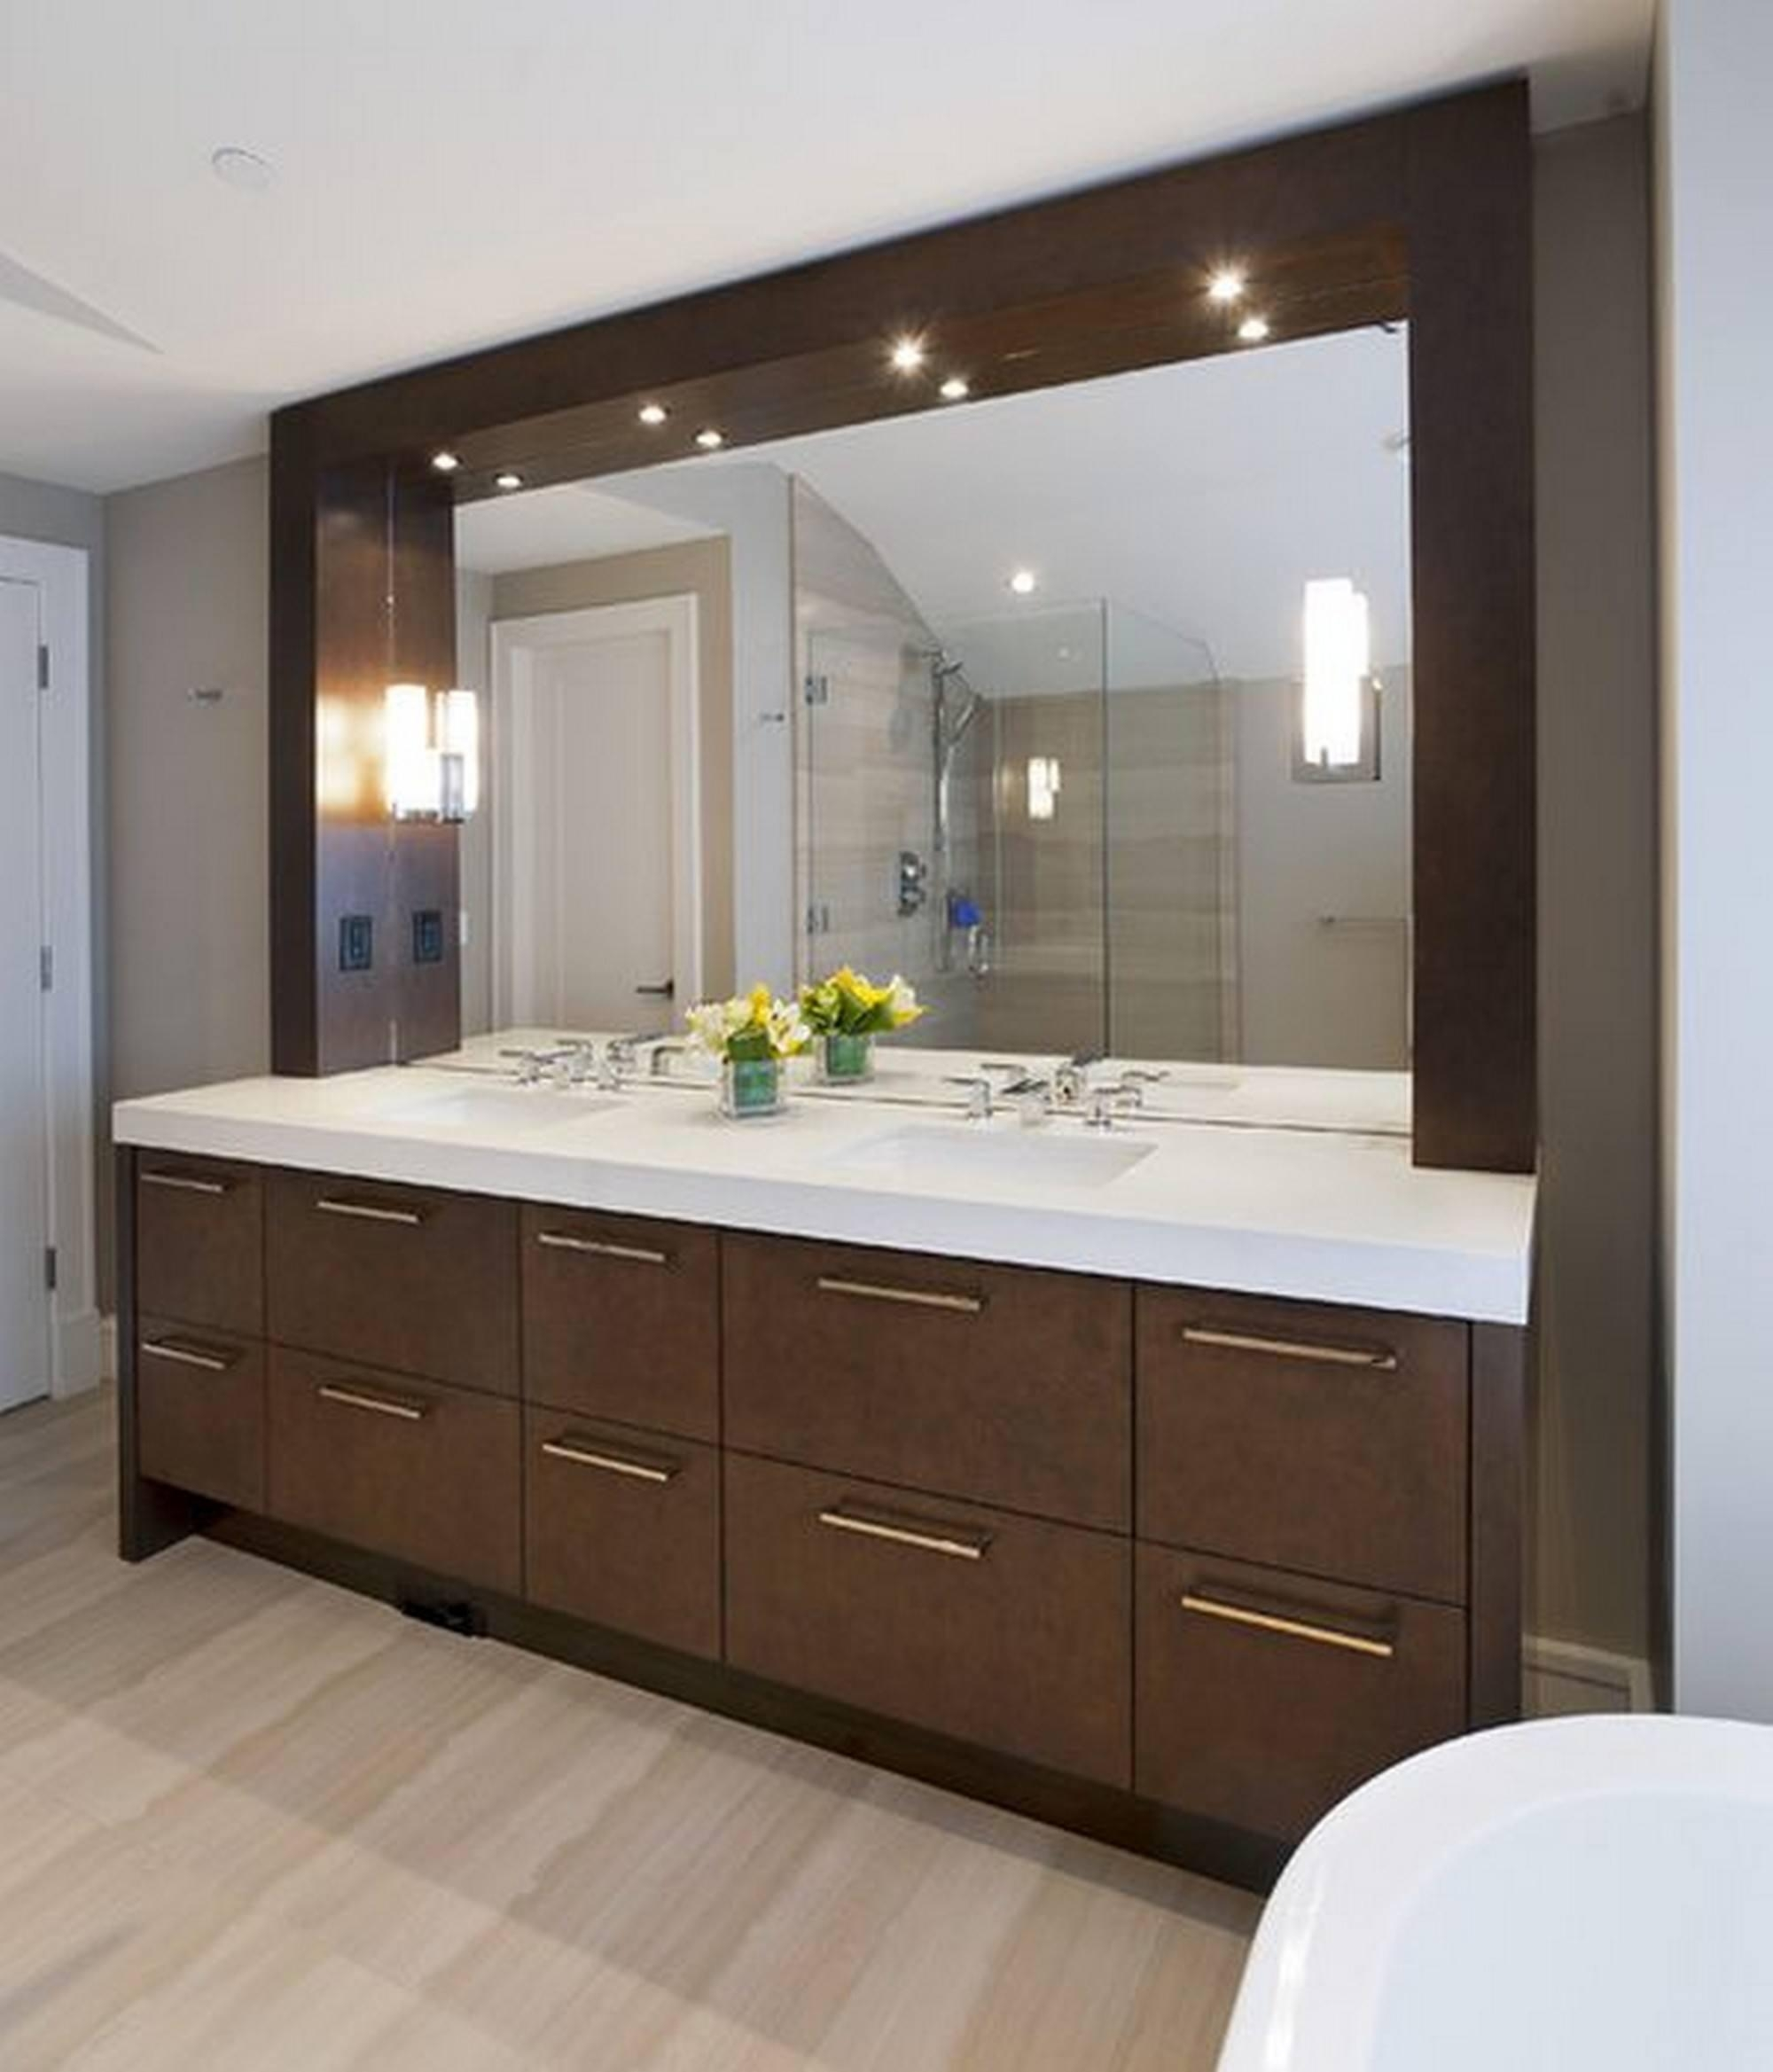 Six Lighting Concepts For Bathroom Mirrors: Pros And Cons Inside Lights For Bathroom Mirrors (View 20 of 20)